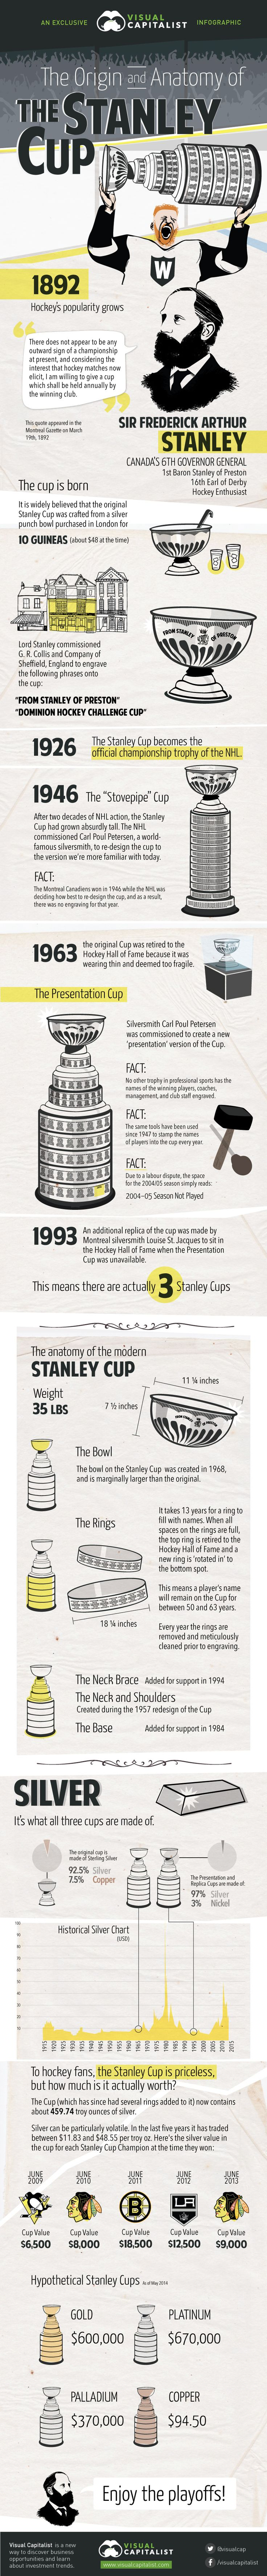 Take a look below for everything you would ever need to know about the Stanley Cup:   As the NHL playoffs heat up, we bring you the inside scoop on Lord Stanley's...